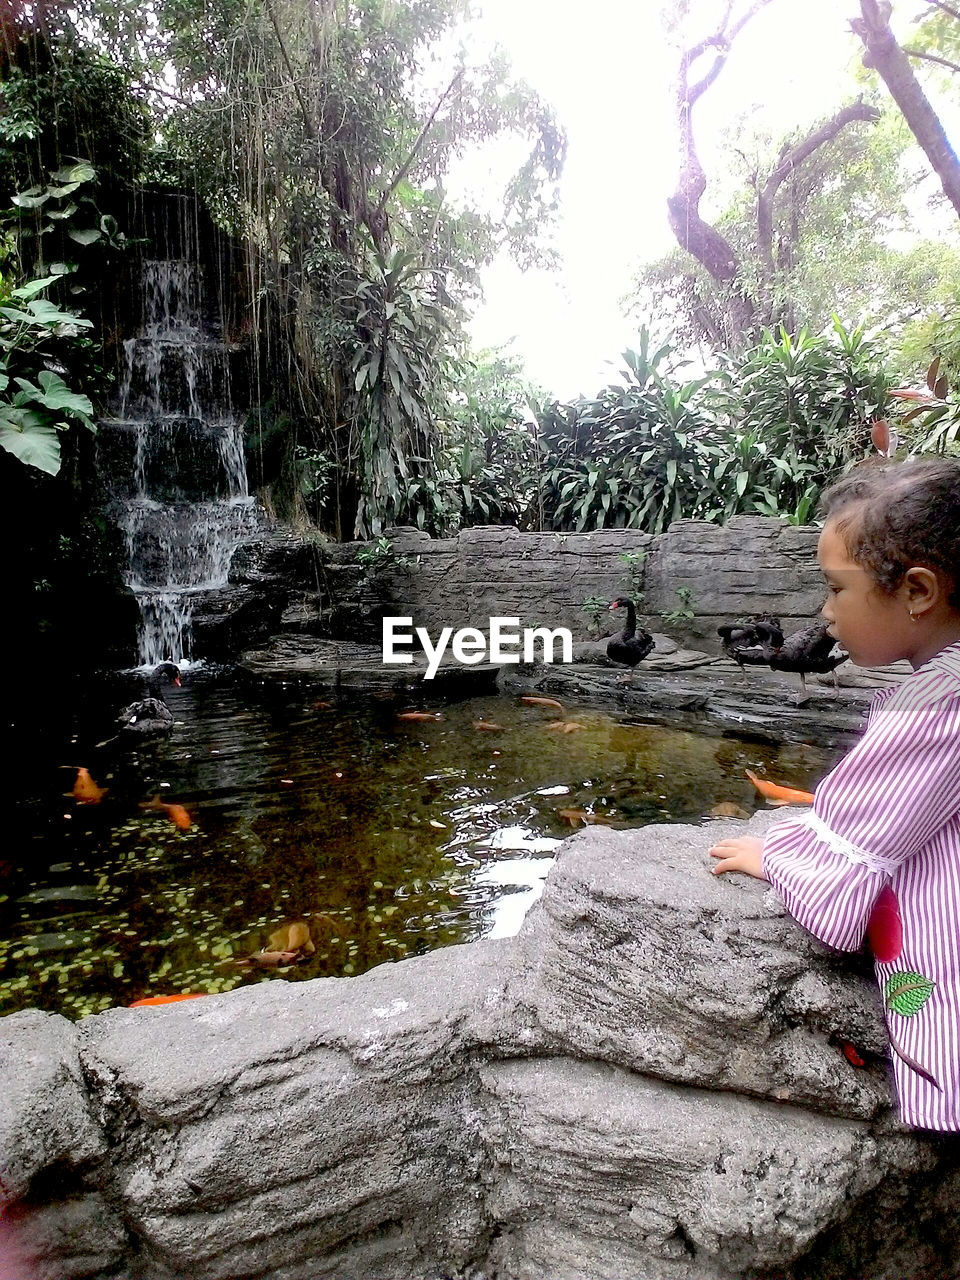 water, child, childhood, real people, tree, one person, plant, nature, day, leisure activity, casual clothing, side view, lifestyles, standing, solid, boys, motion, girls, outdoors, innocence, flowing water